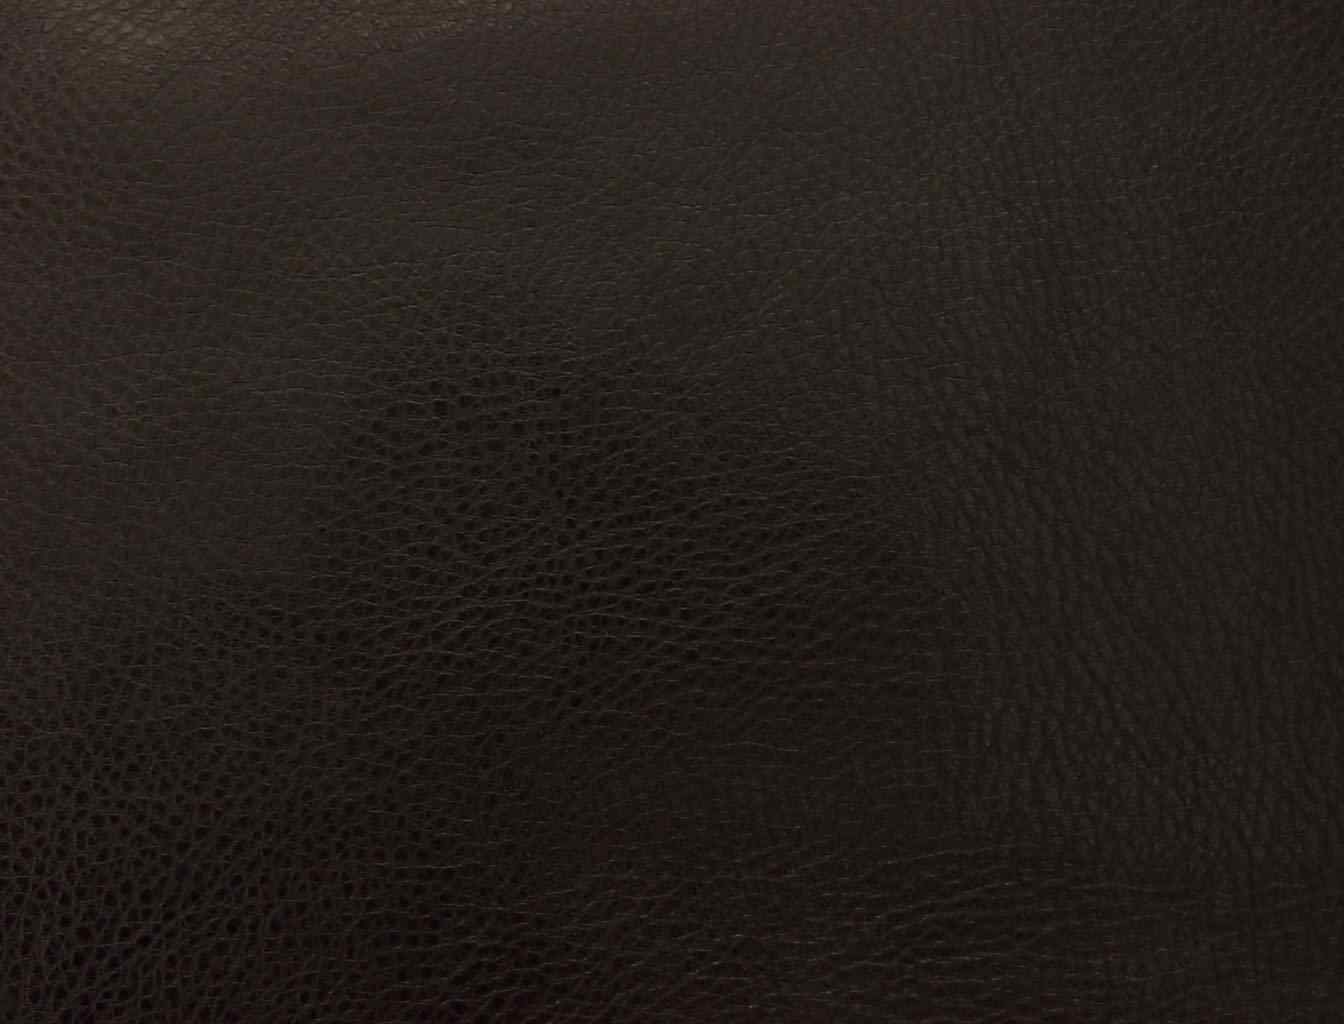 upholstery fabric by the yard with Black Upholstery Vinyl on 100261 1156 Light Blue Chiffon besides Marine Vinyl Black in addition Kaufman Shetland Flannel Solid Maroon in addition 201537470836 additionally 9 Oz Brushed Bull Denim Burgundy.